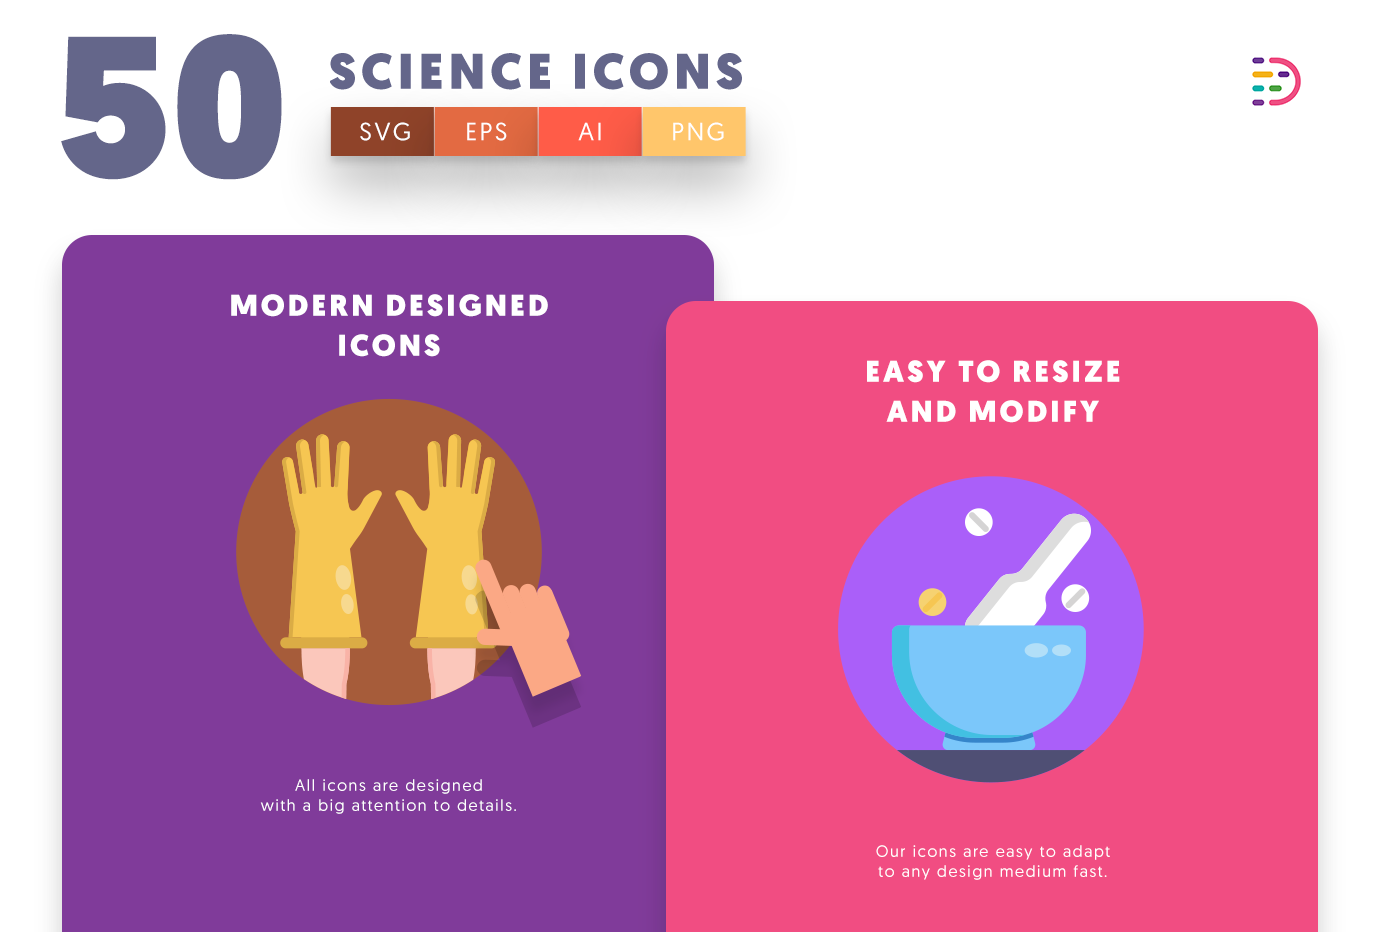 Science icons png/svg/eps